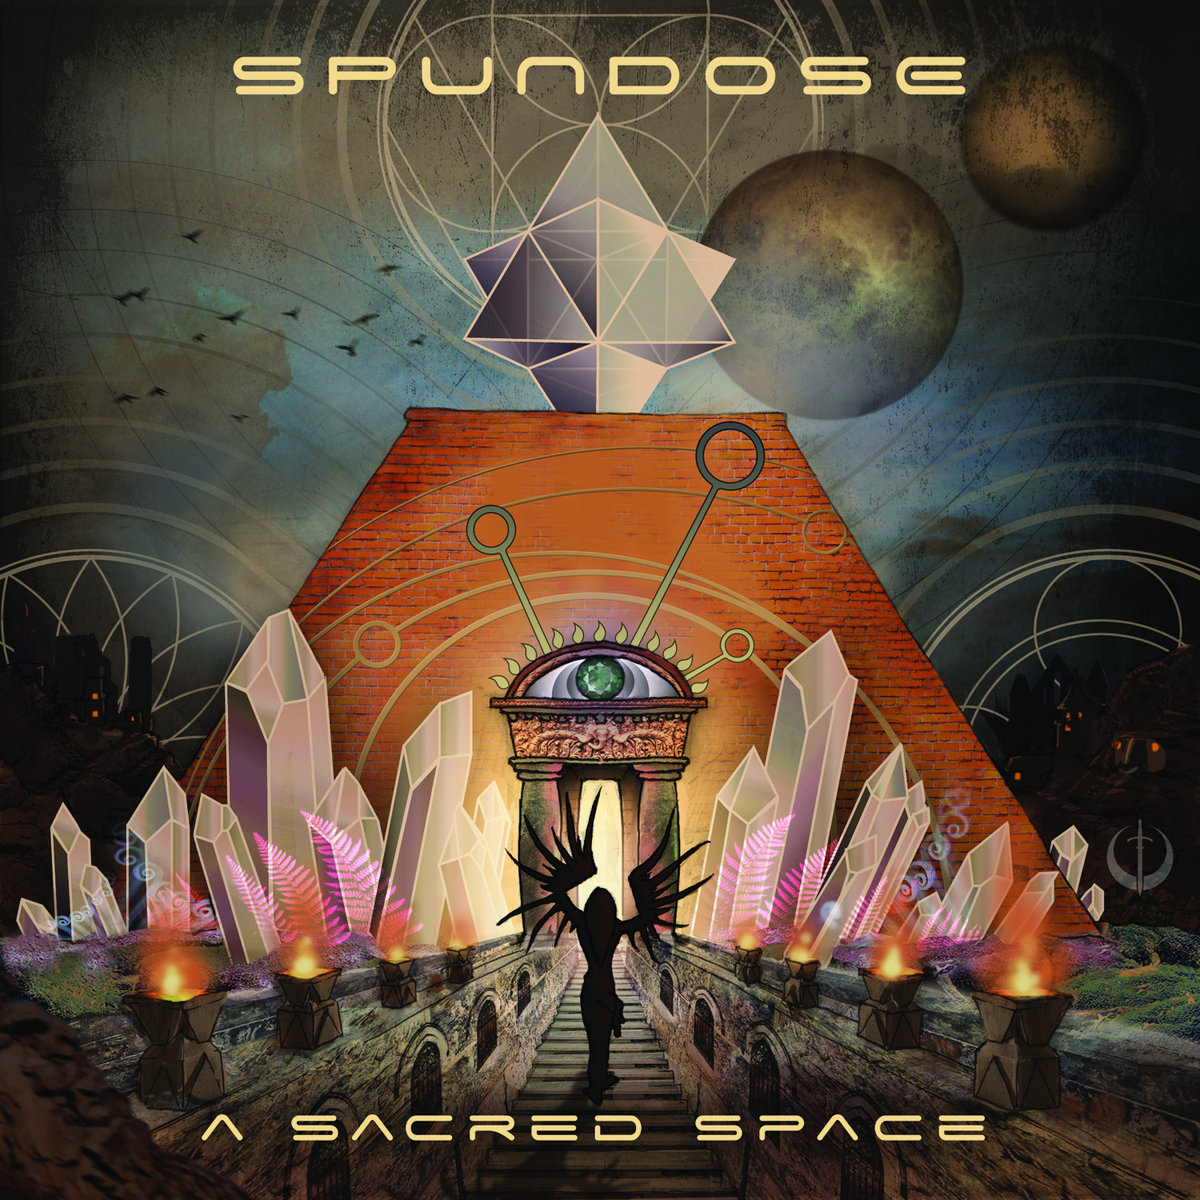 Spundose - Curiouser and Curiouser @ 'A Sacred Space' album (bass, electronic)